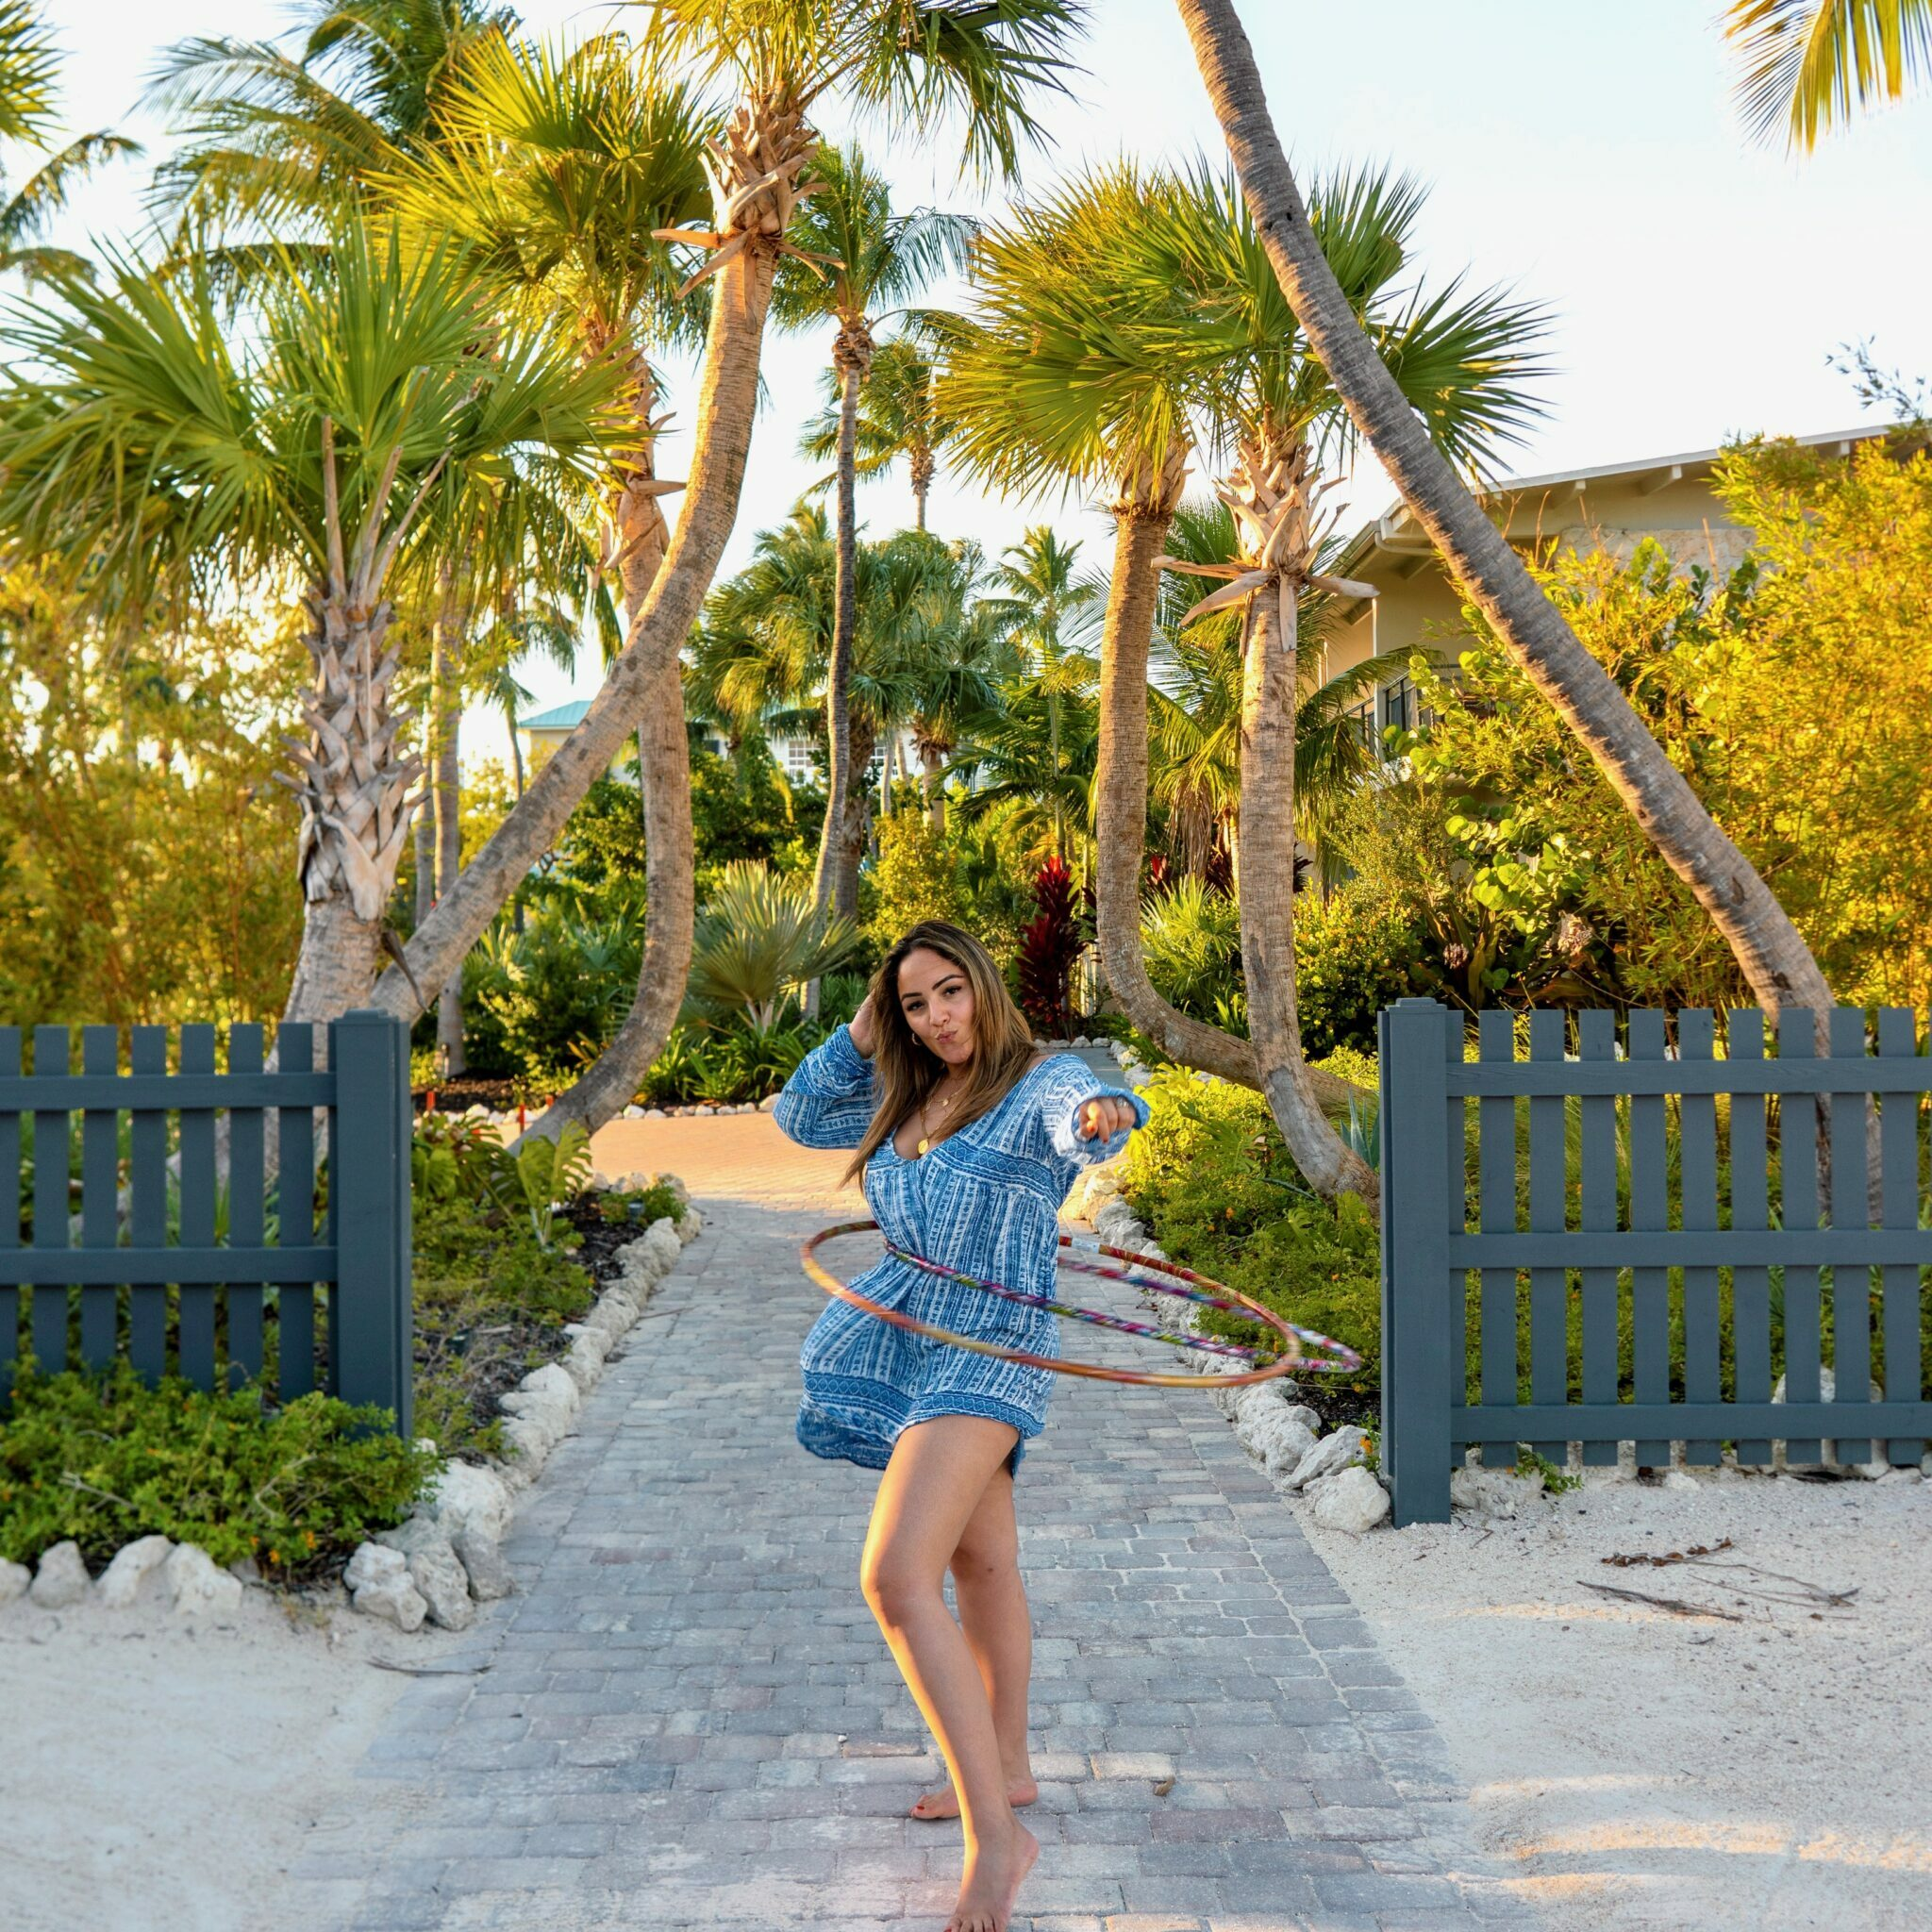 islamorada itinerary girl hoola hooping on the beach with palm trees in the background